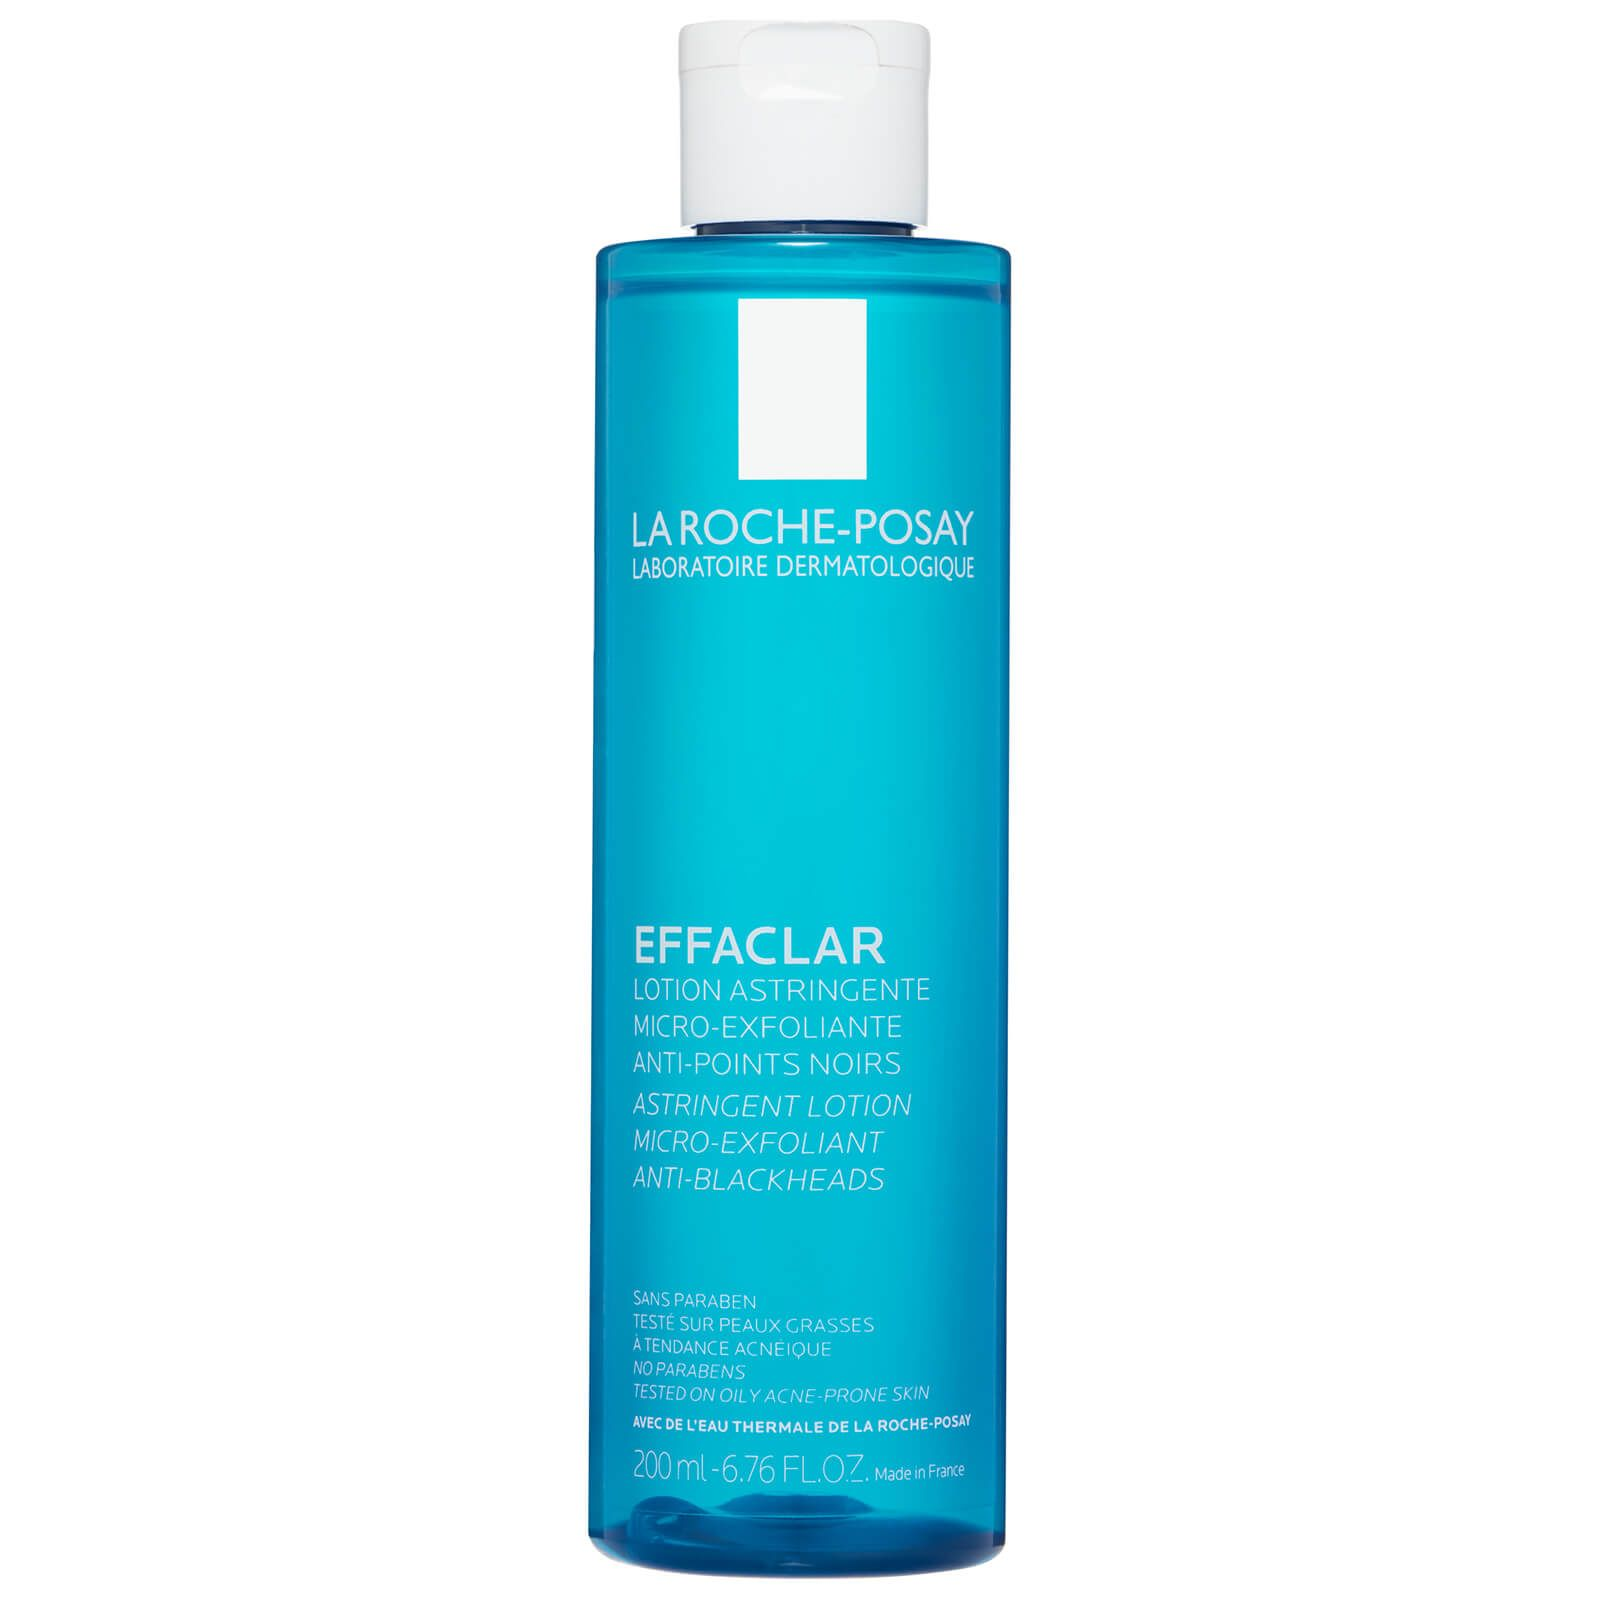 La Roche Posay Effaclar Clarifying Lotion 200ml With Images